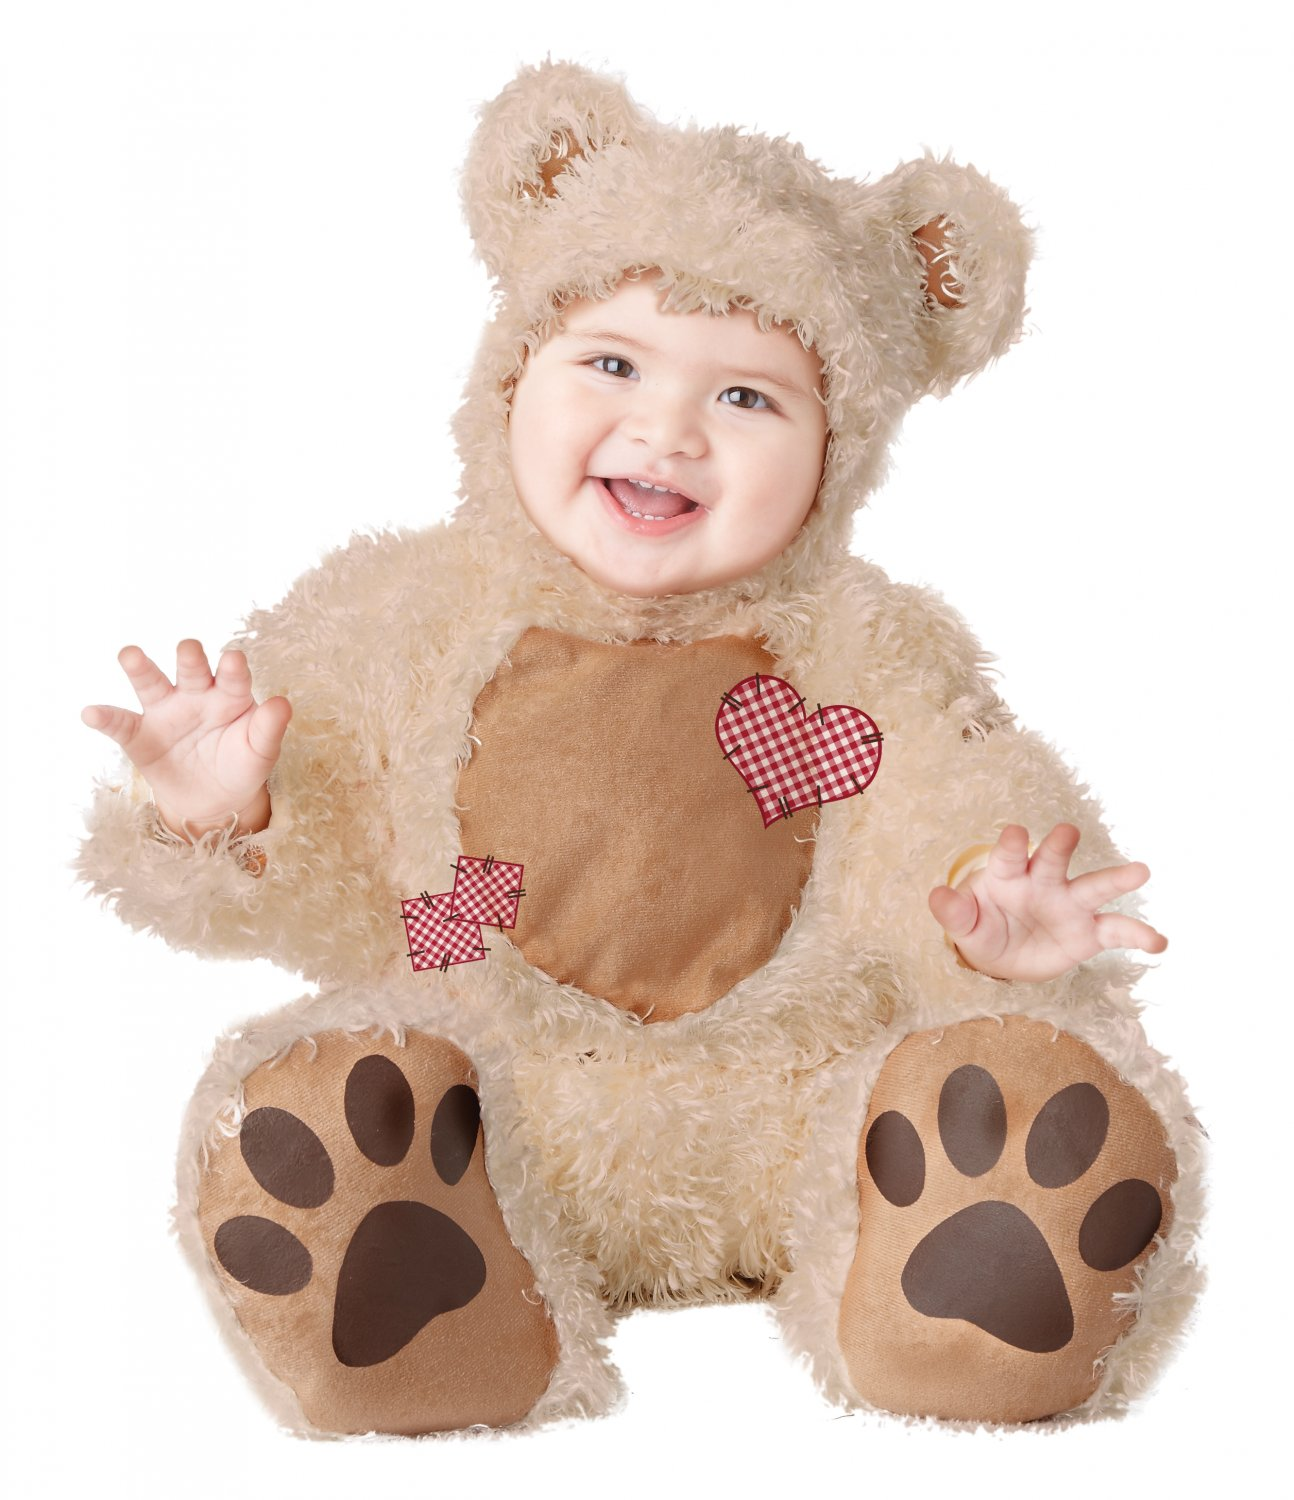 Cuddly Bear Infant Costume Size: Large #10034